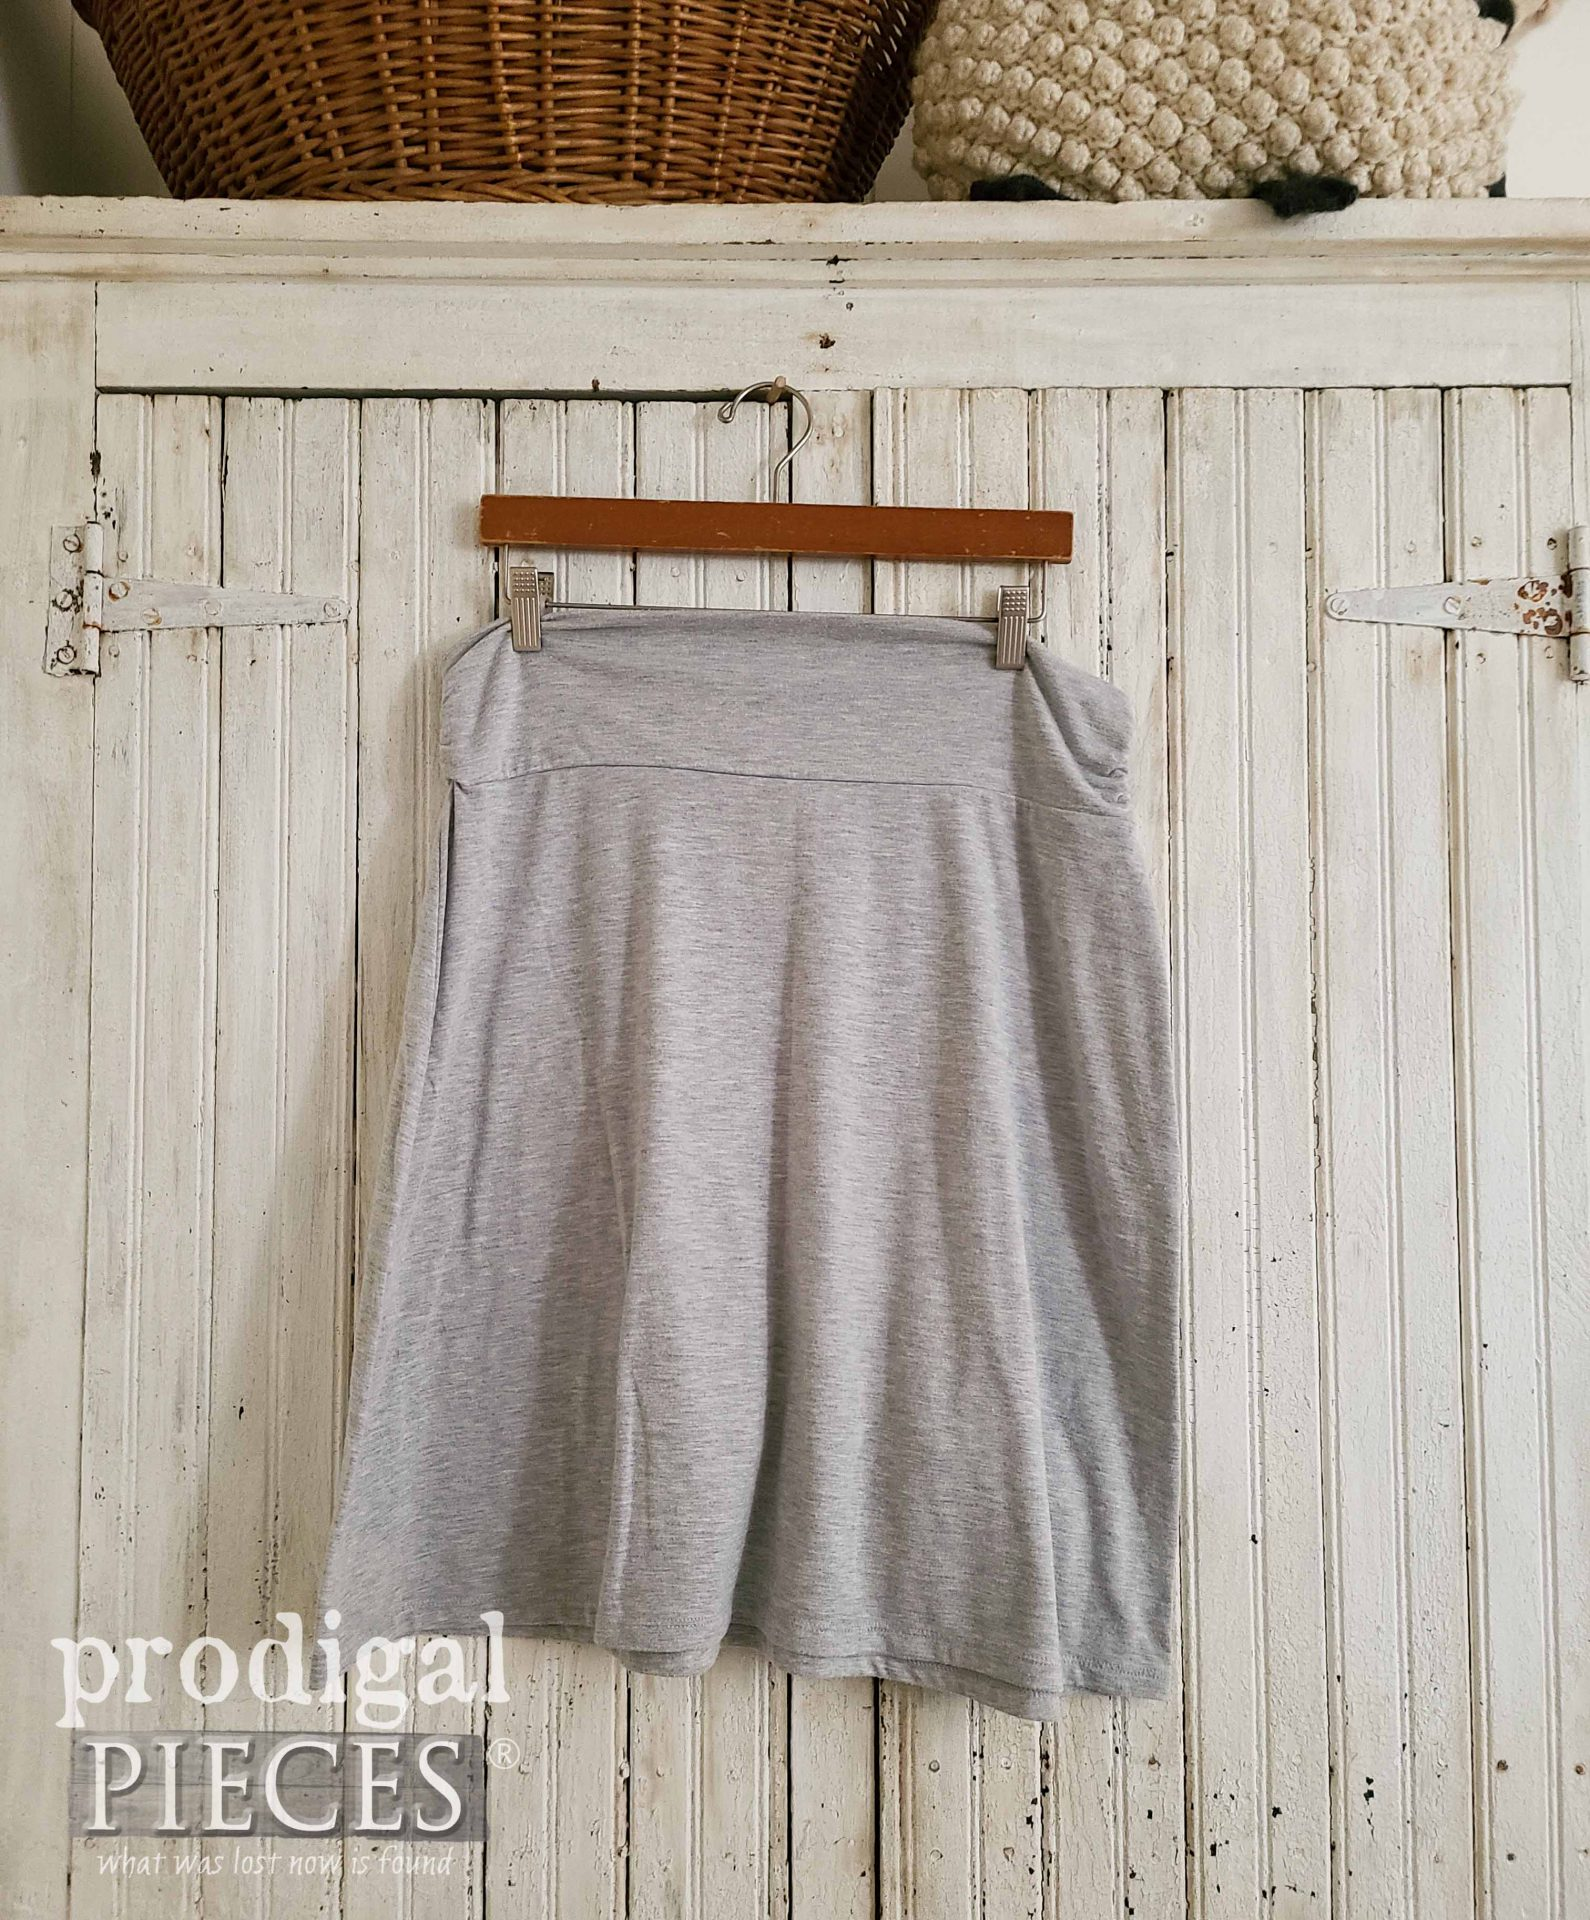 Gray Knit Skirt Before Refashion by Prodigal Pieces | prodigalpieces.com